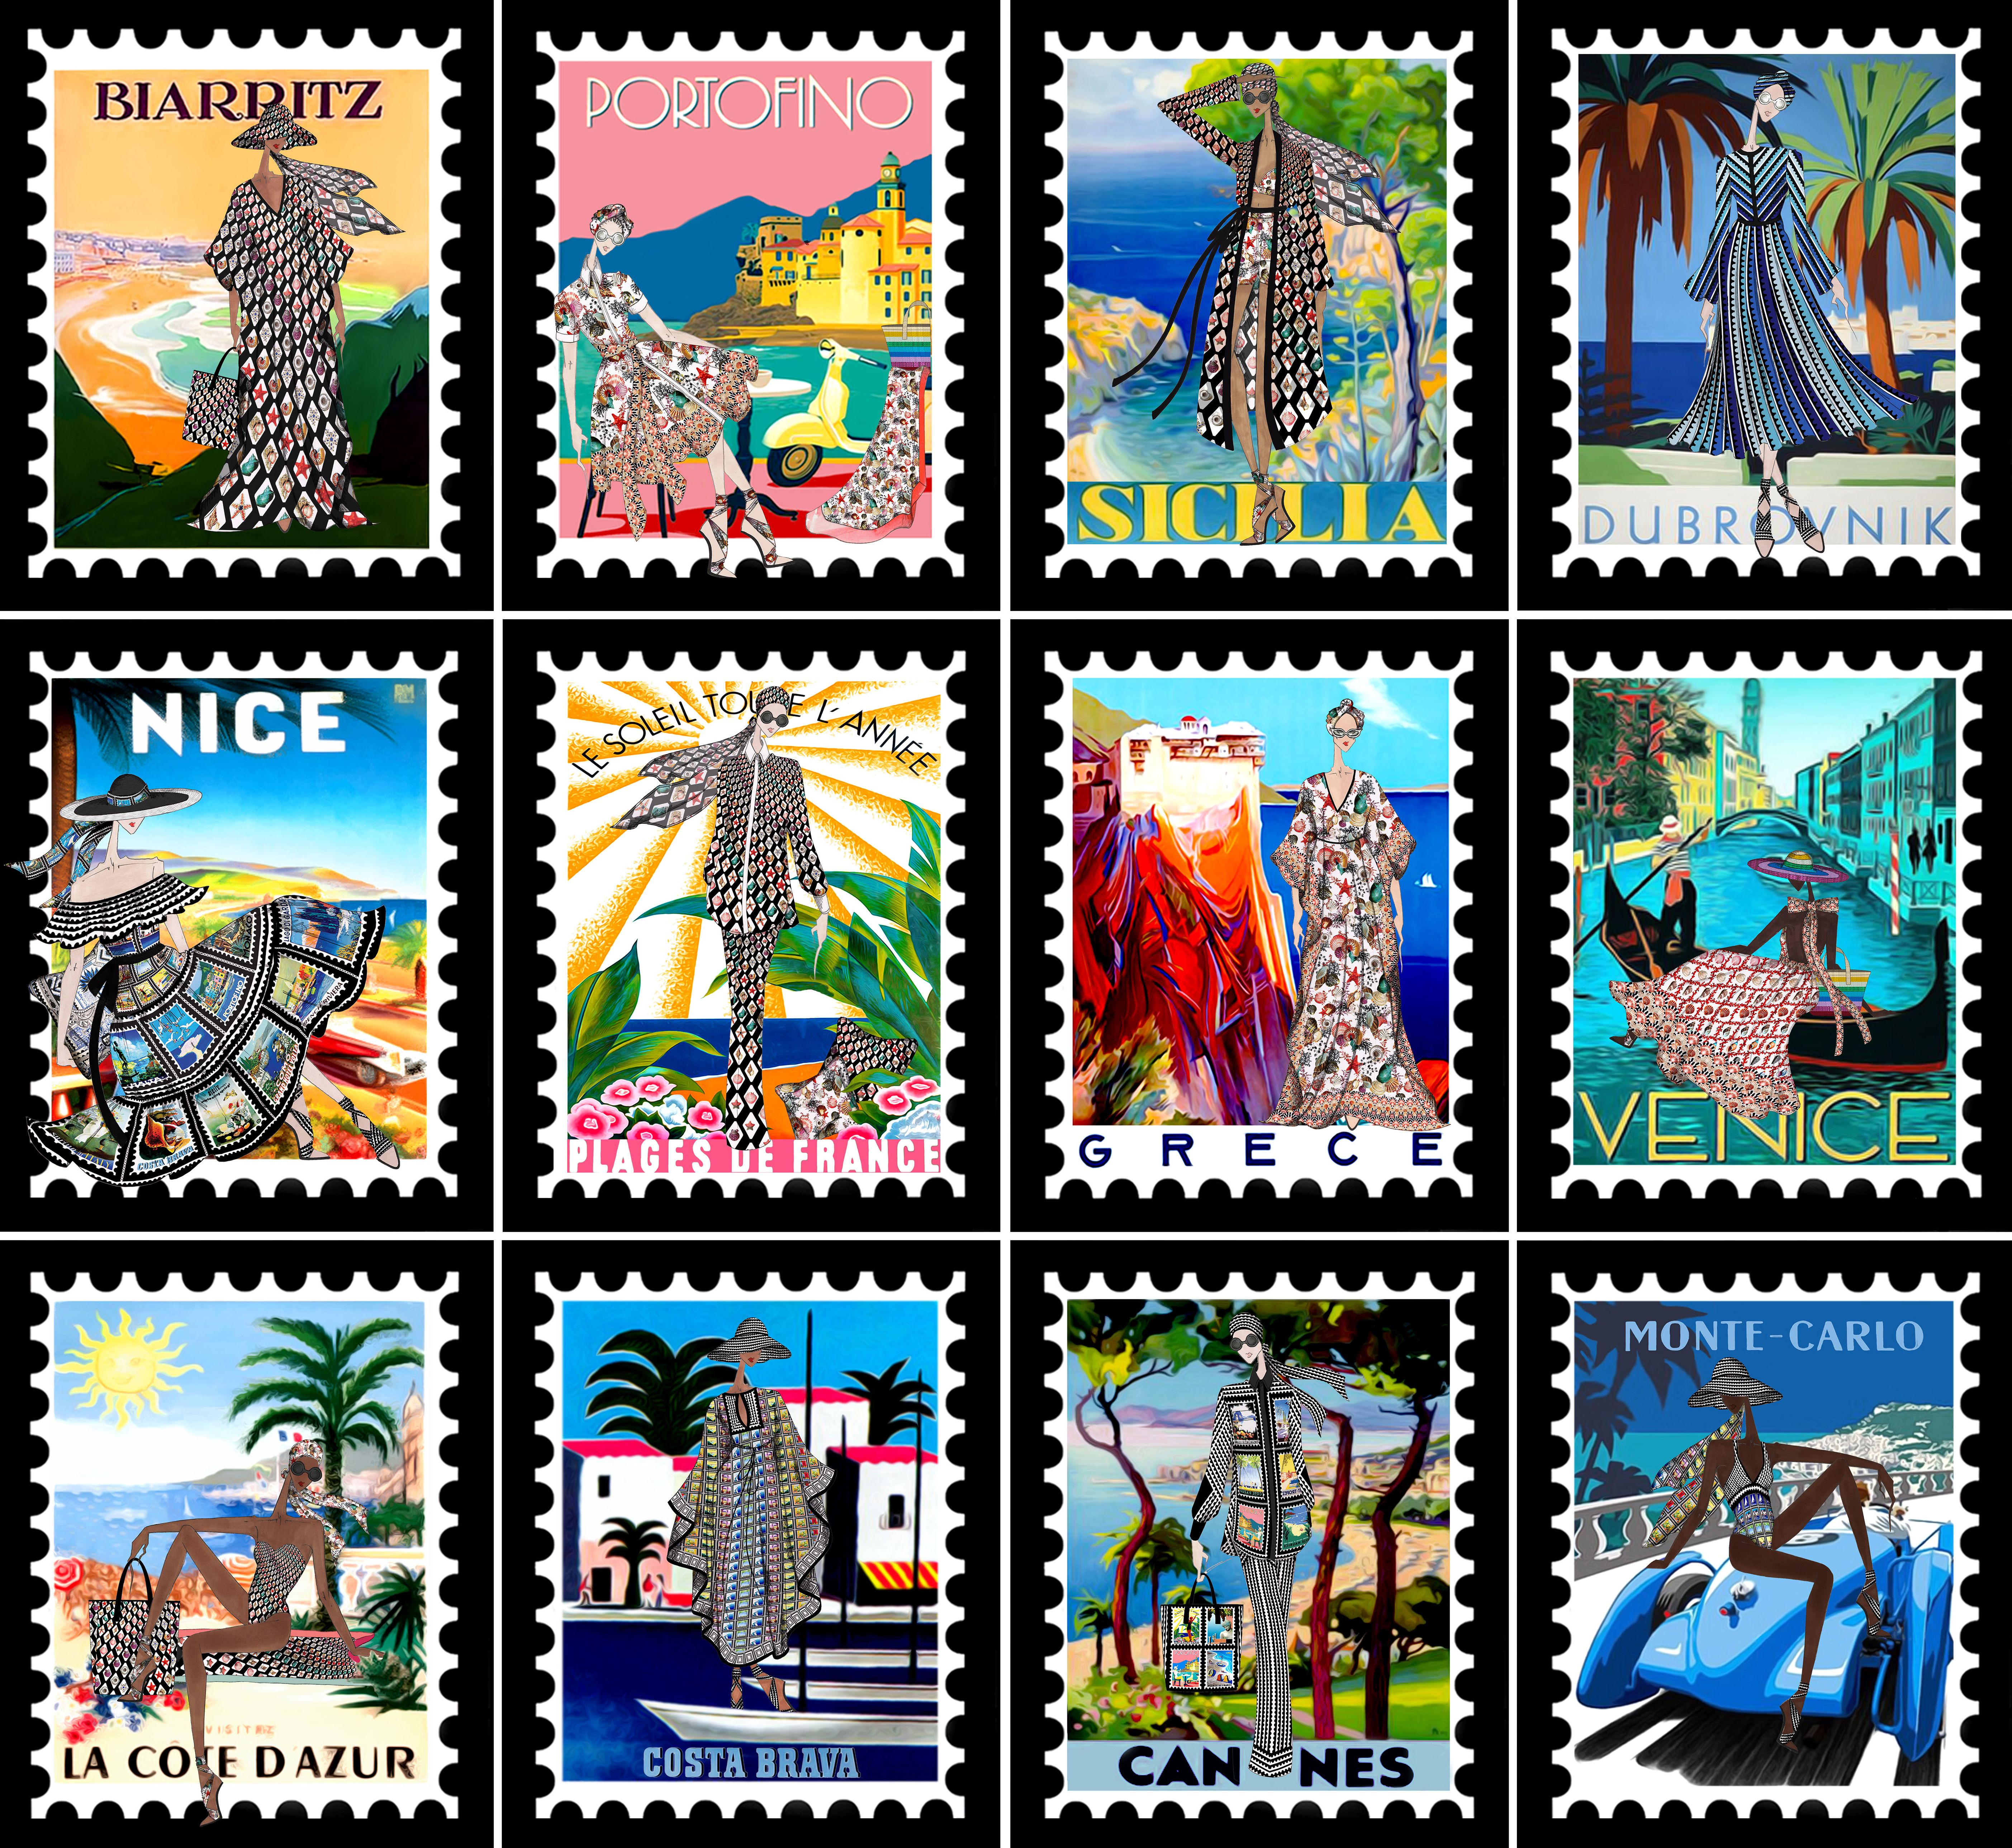 mary katrantzou's postage stamp campaign for her mare line